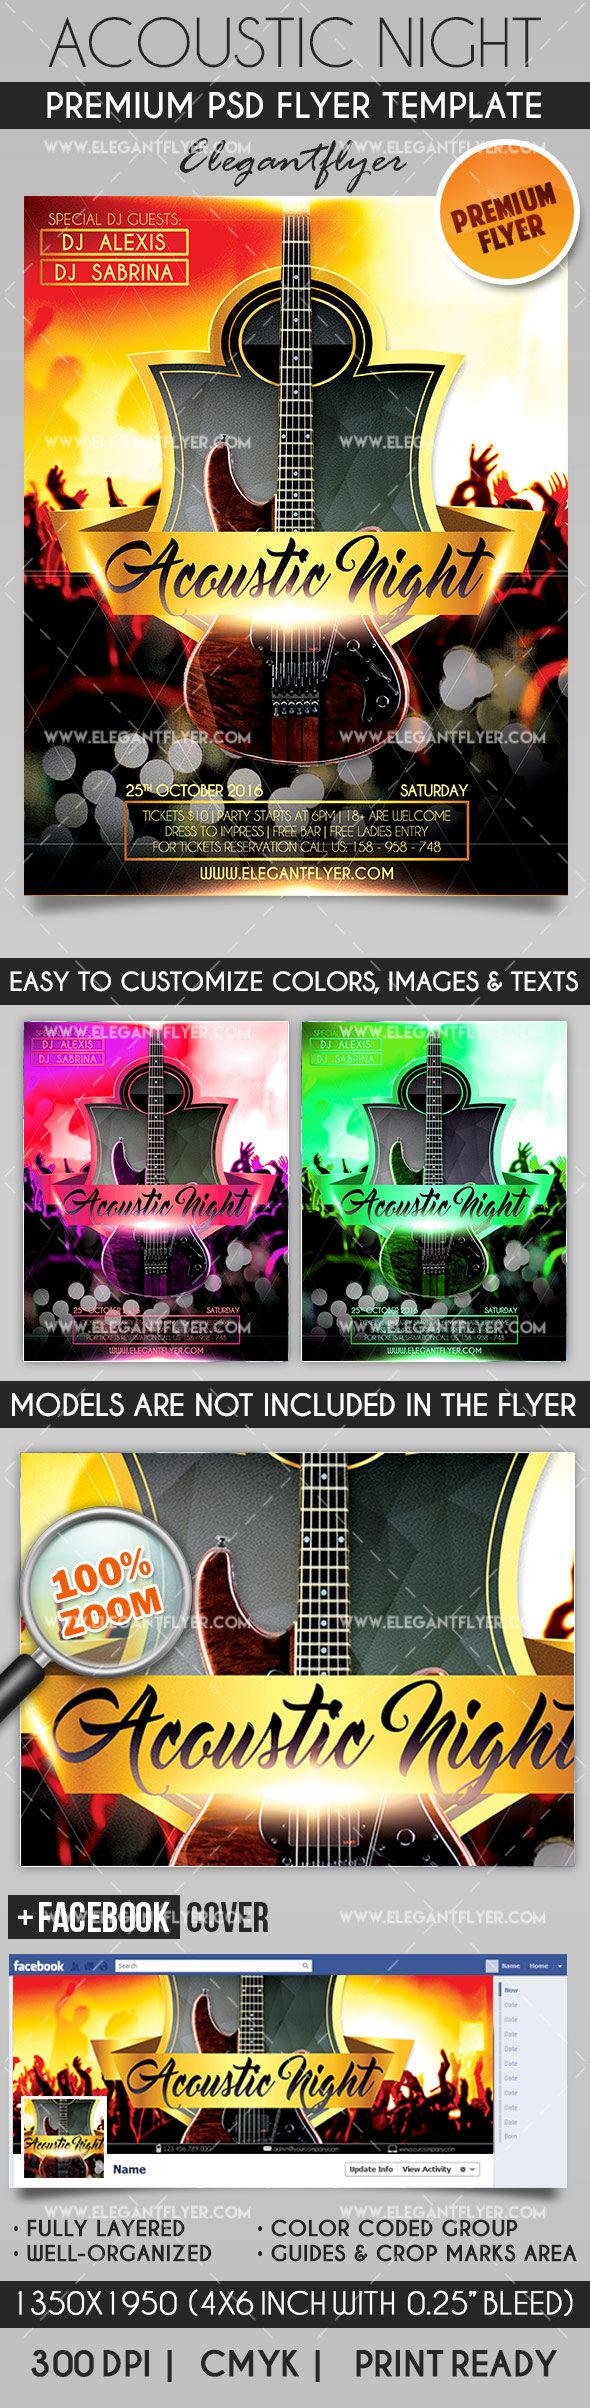 Acoustic Guitar Flyer Template Printable